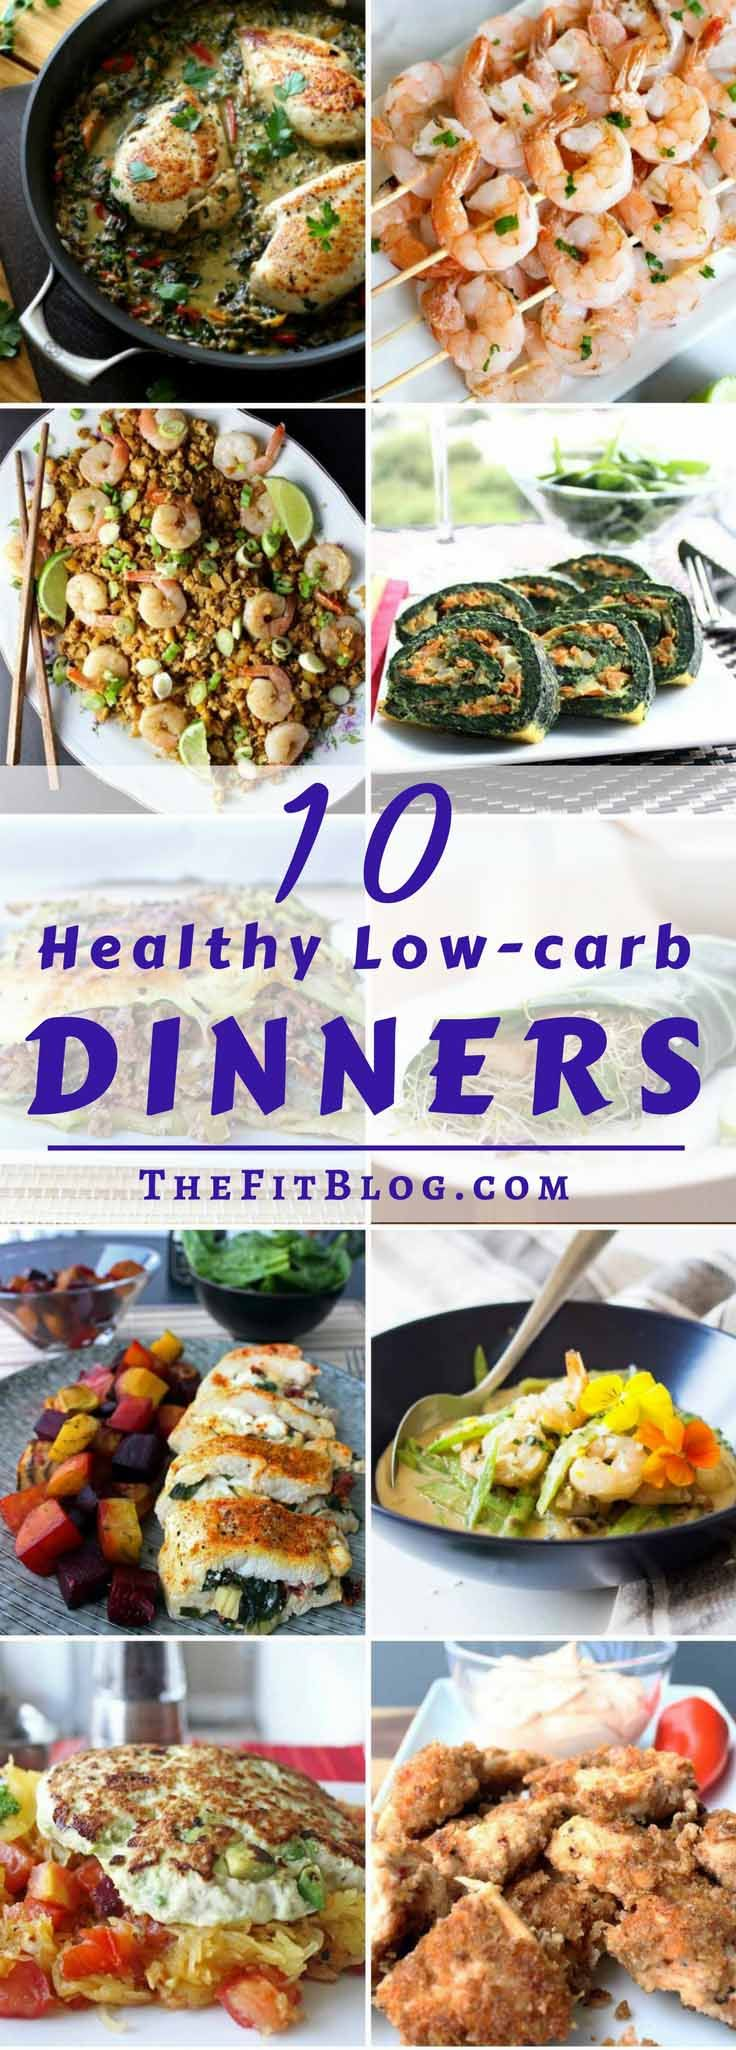 10 Healthy Low-Carb Dinner Recipes – My favorite diabetes friendly and easy…